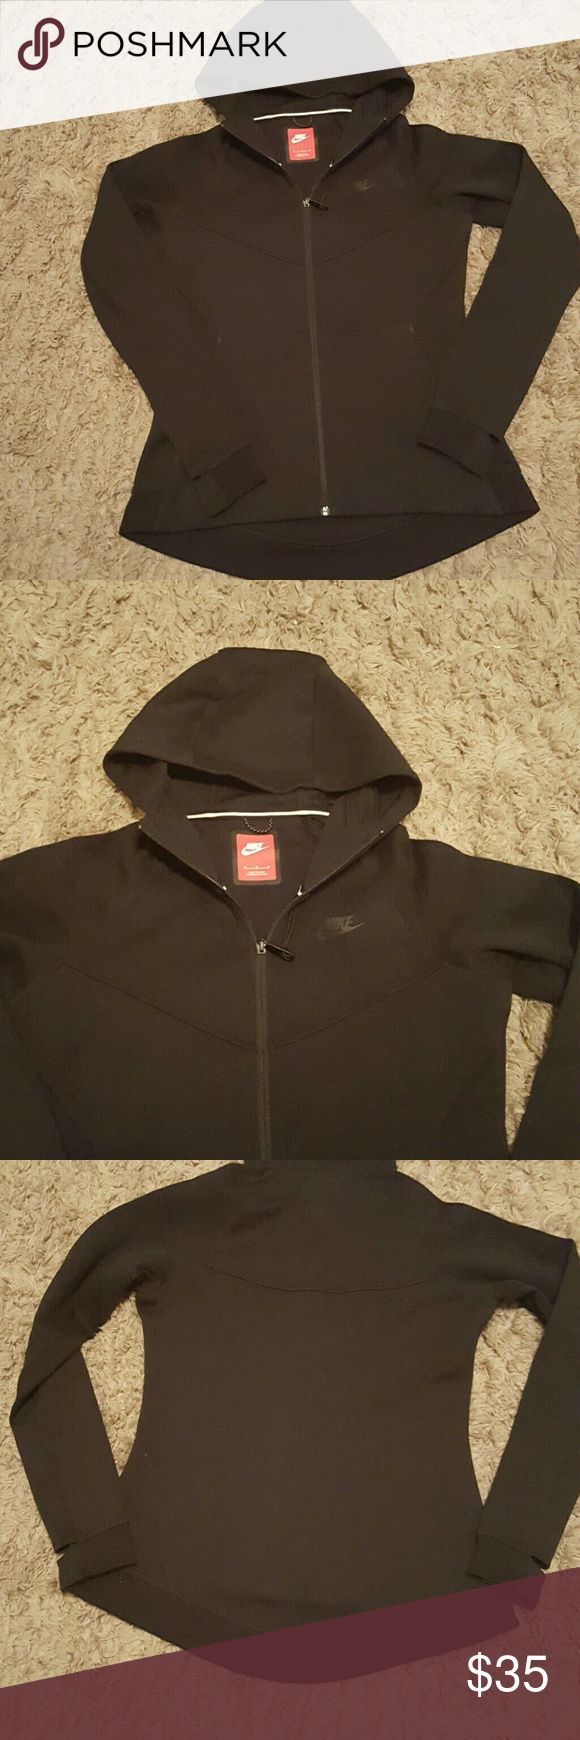 Nike Fleece Full Zip Hoodie Nike fleece hoodie new without tags,  never worn. Fits just past the waist in the rear. Includes Nike logo on front of jacket, pockets and thumb holes Nike Tops Sweatshirts & Hoodies